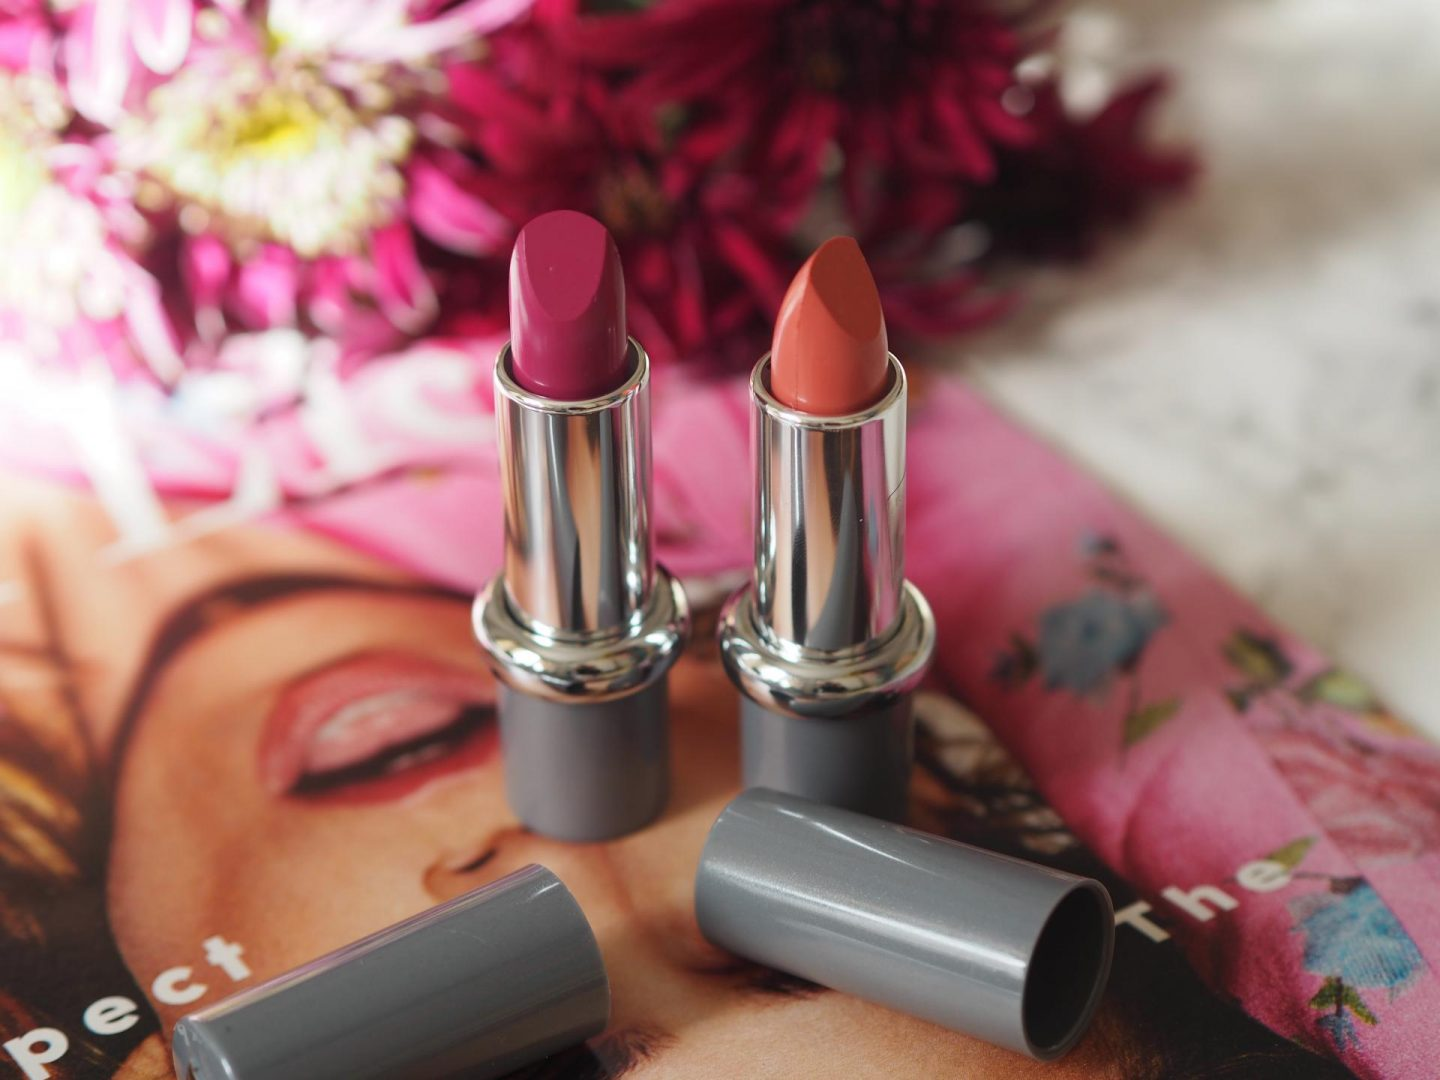 Best New Lipsticks - Product: Mavala Switzerland Lipstick (Happy Zen Collection) – Opal Rose and Glowing Violet